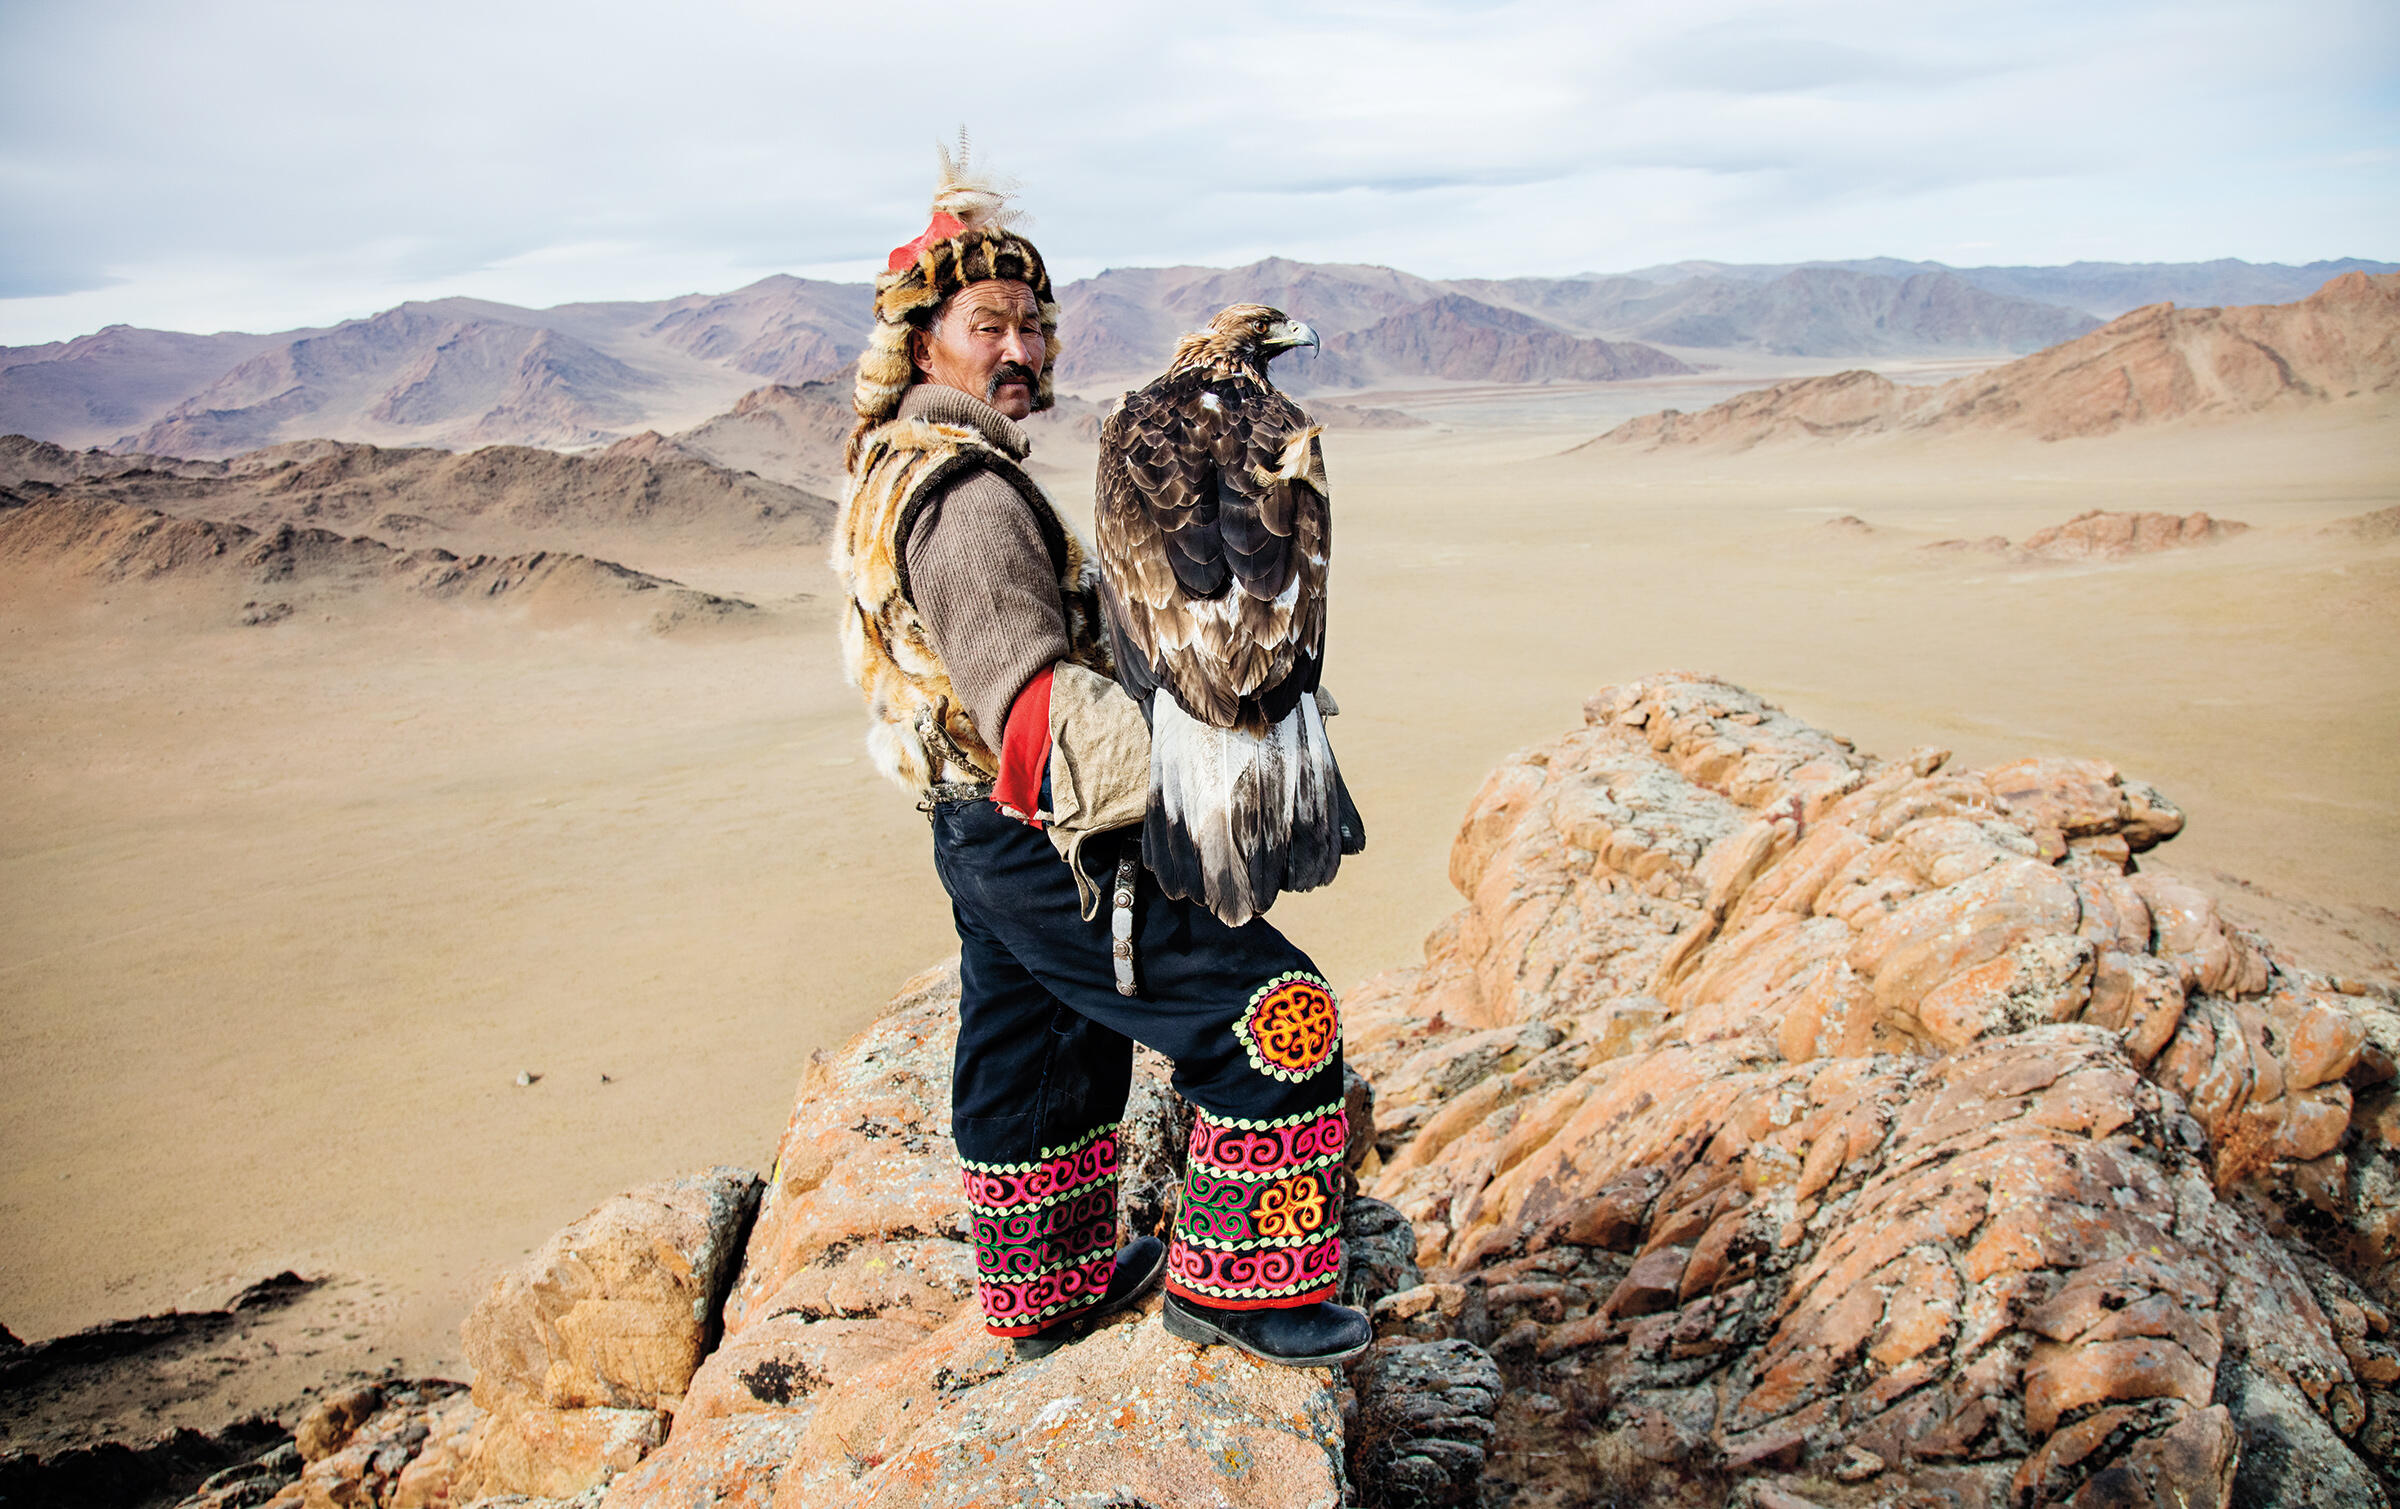 Dalaikhan Itale wears traditional Kazakh garb out on the hunt with his Golden Eagle in western Mongolia. Cedric Angeles/Intersection Photos